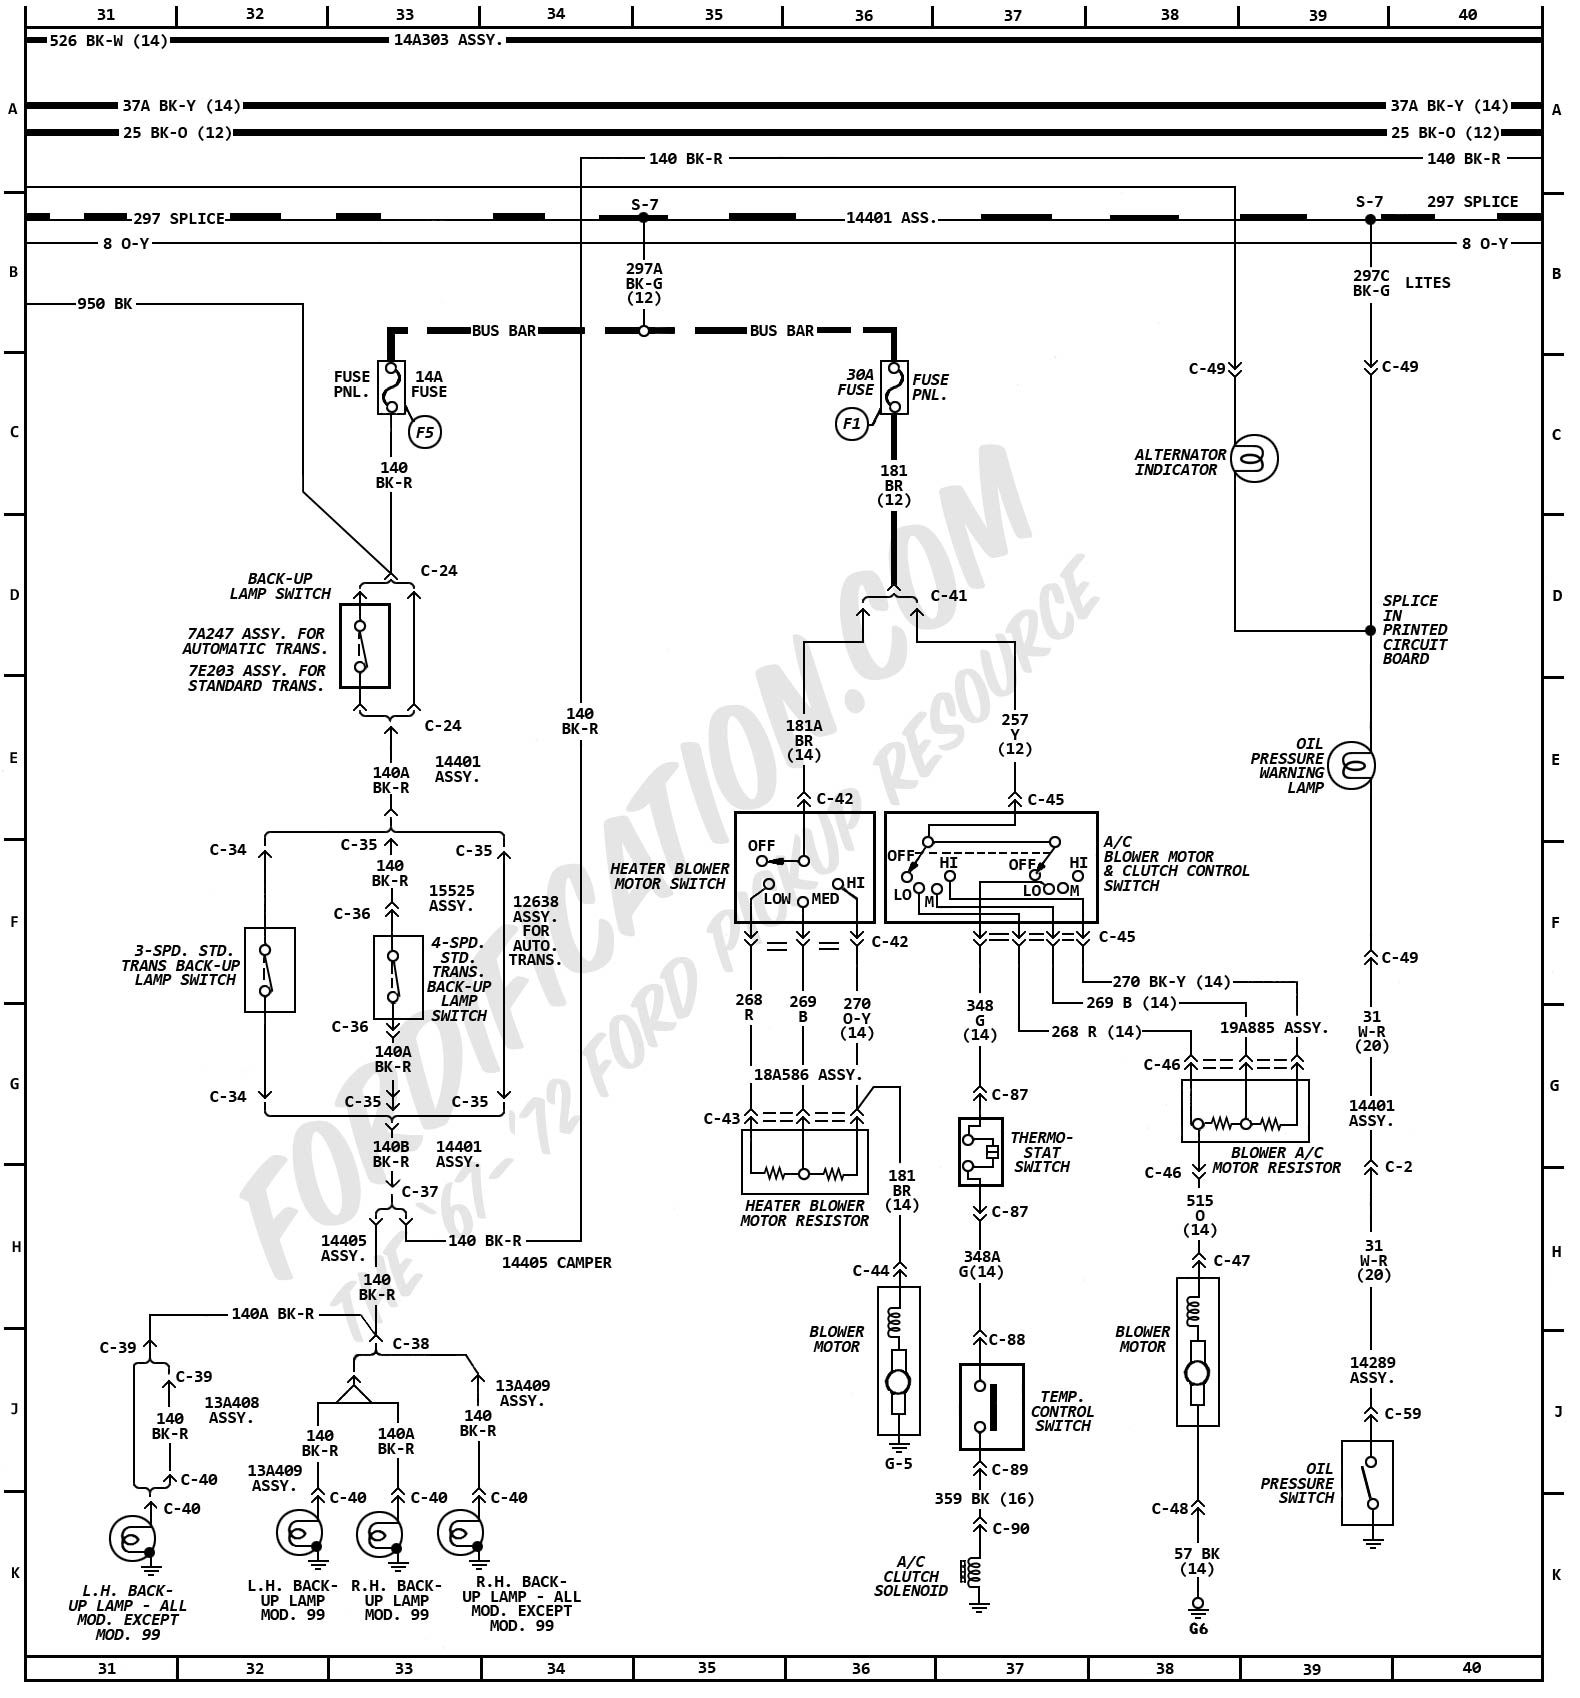 2002 Ford F 250 Cluster Wiring Diagram Reveolution Of Mustang Inside Fuse Box 1972 F250 Switch U2022 Rh 140 82 24 126 Wiper Motor